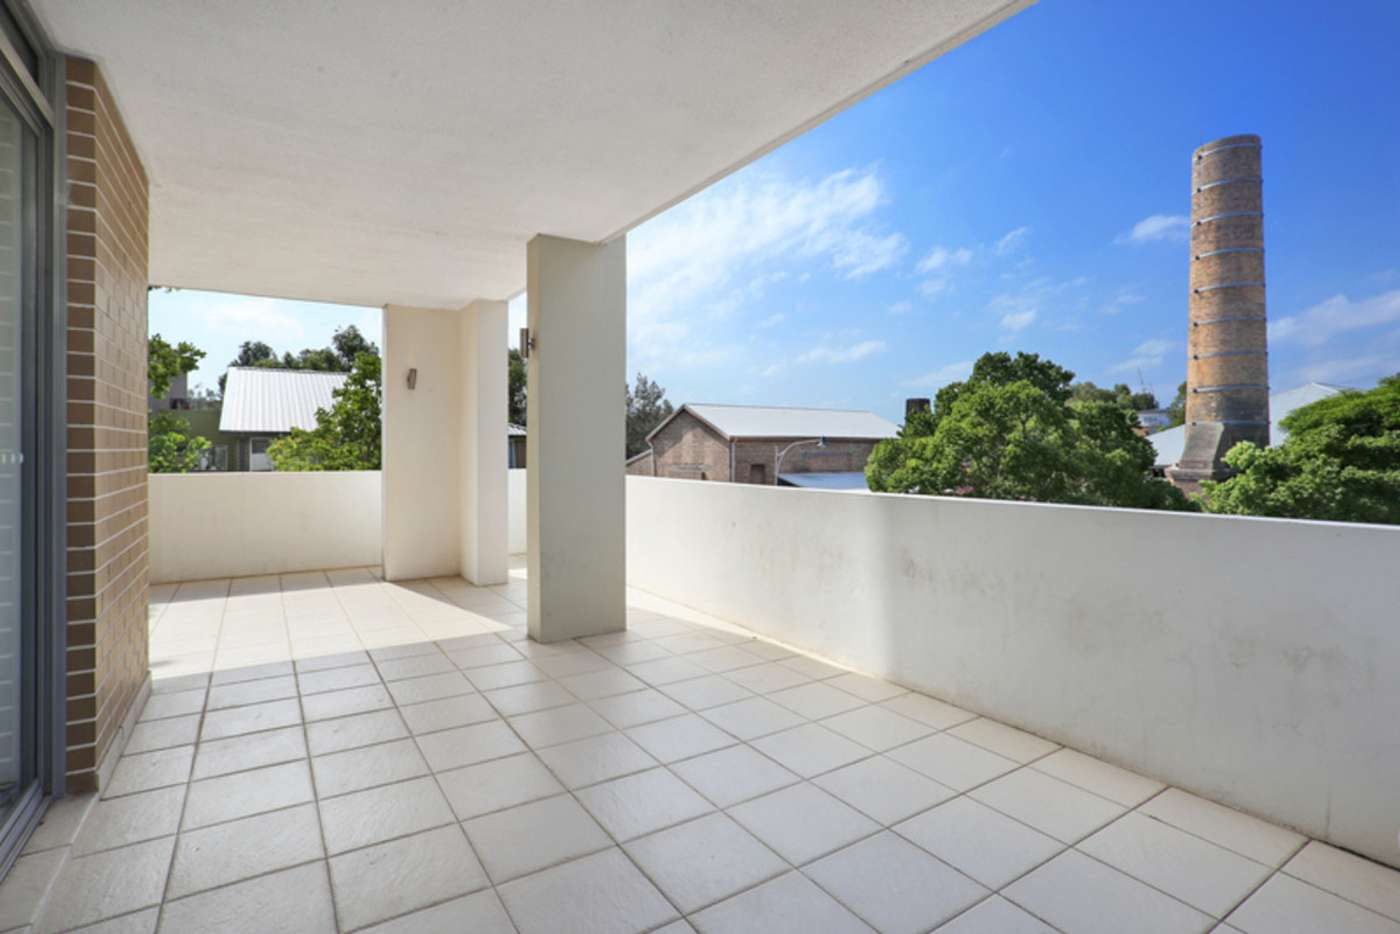 Sixth view of Homely apartment listing, 36/28 Brickworks Drive, Holroyd NSW 2142